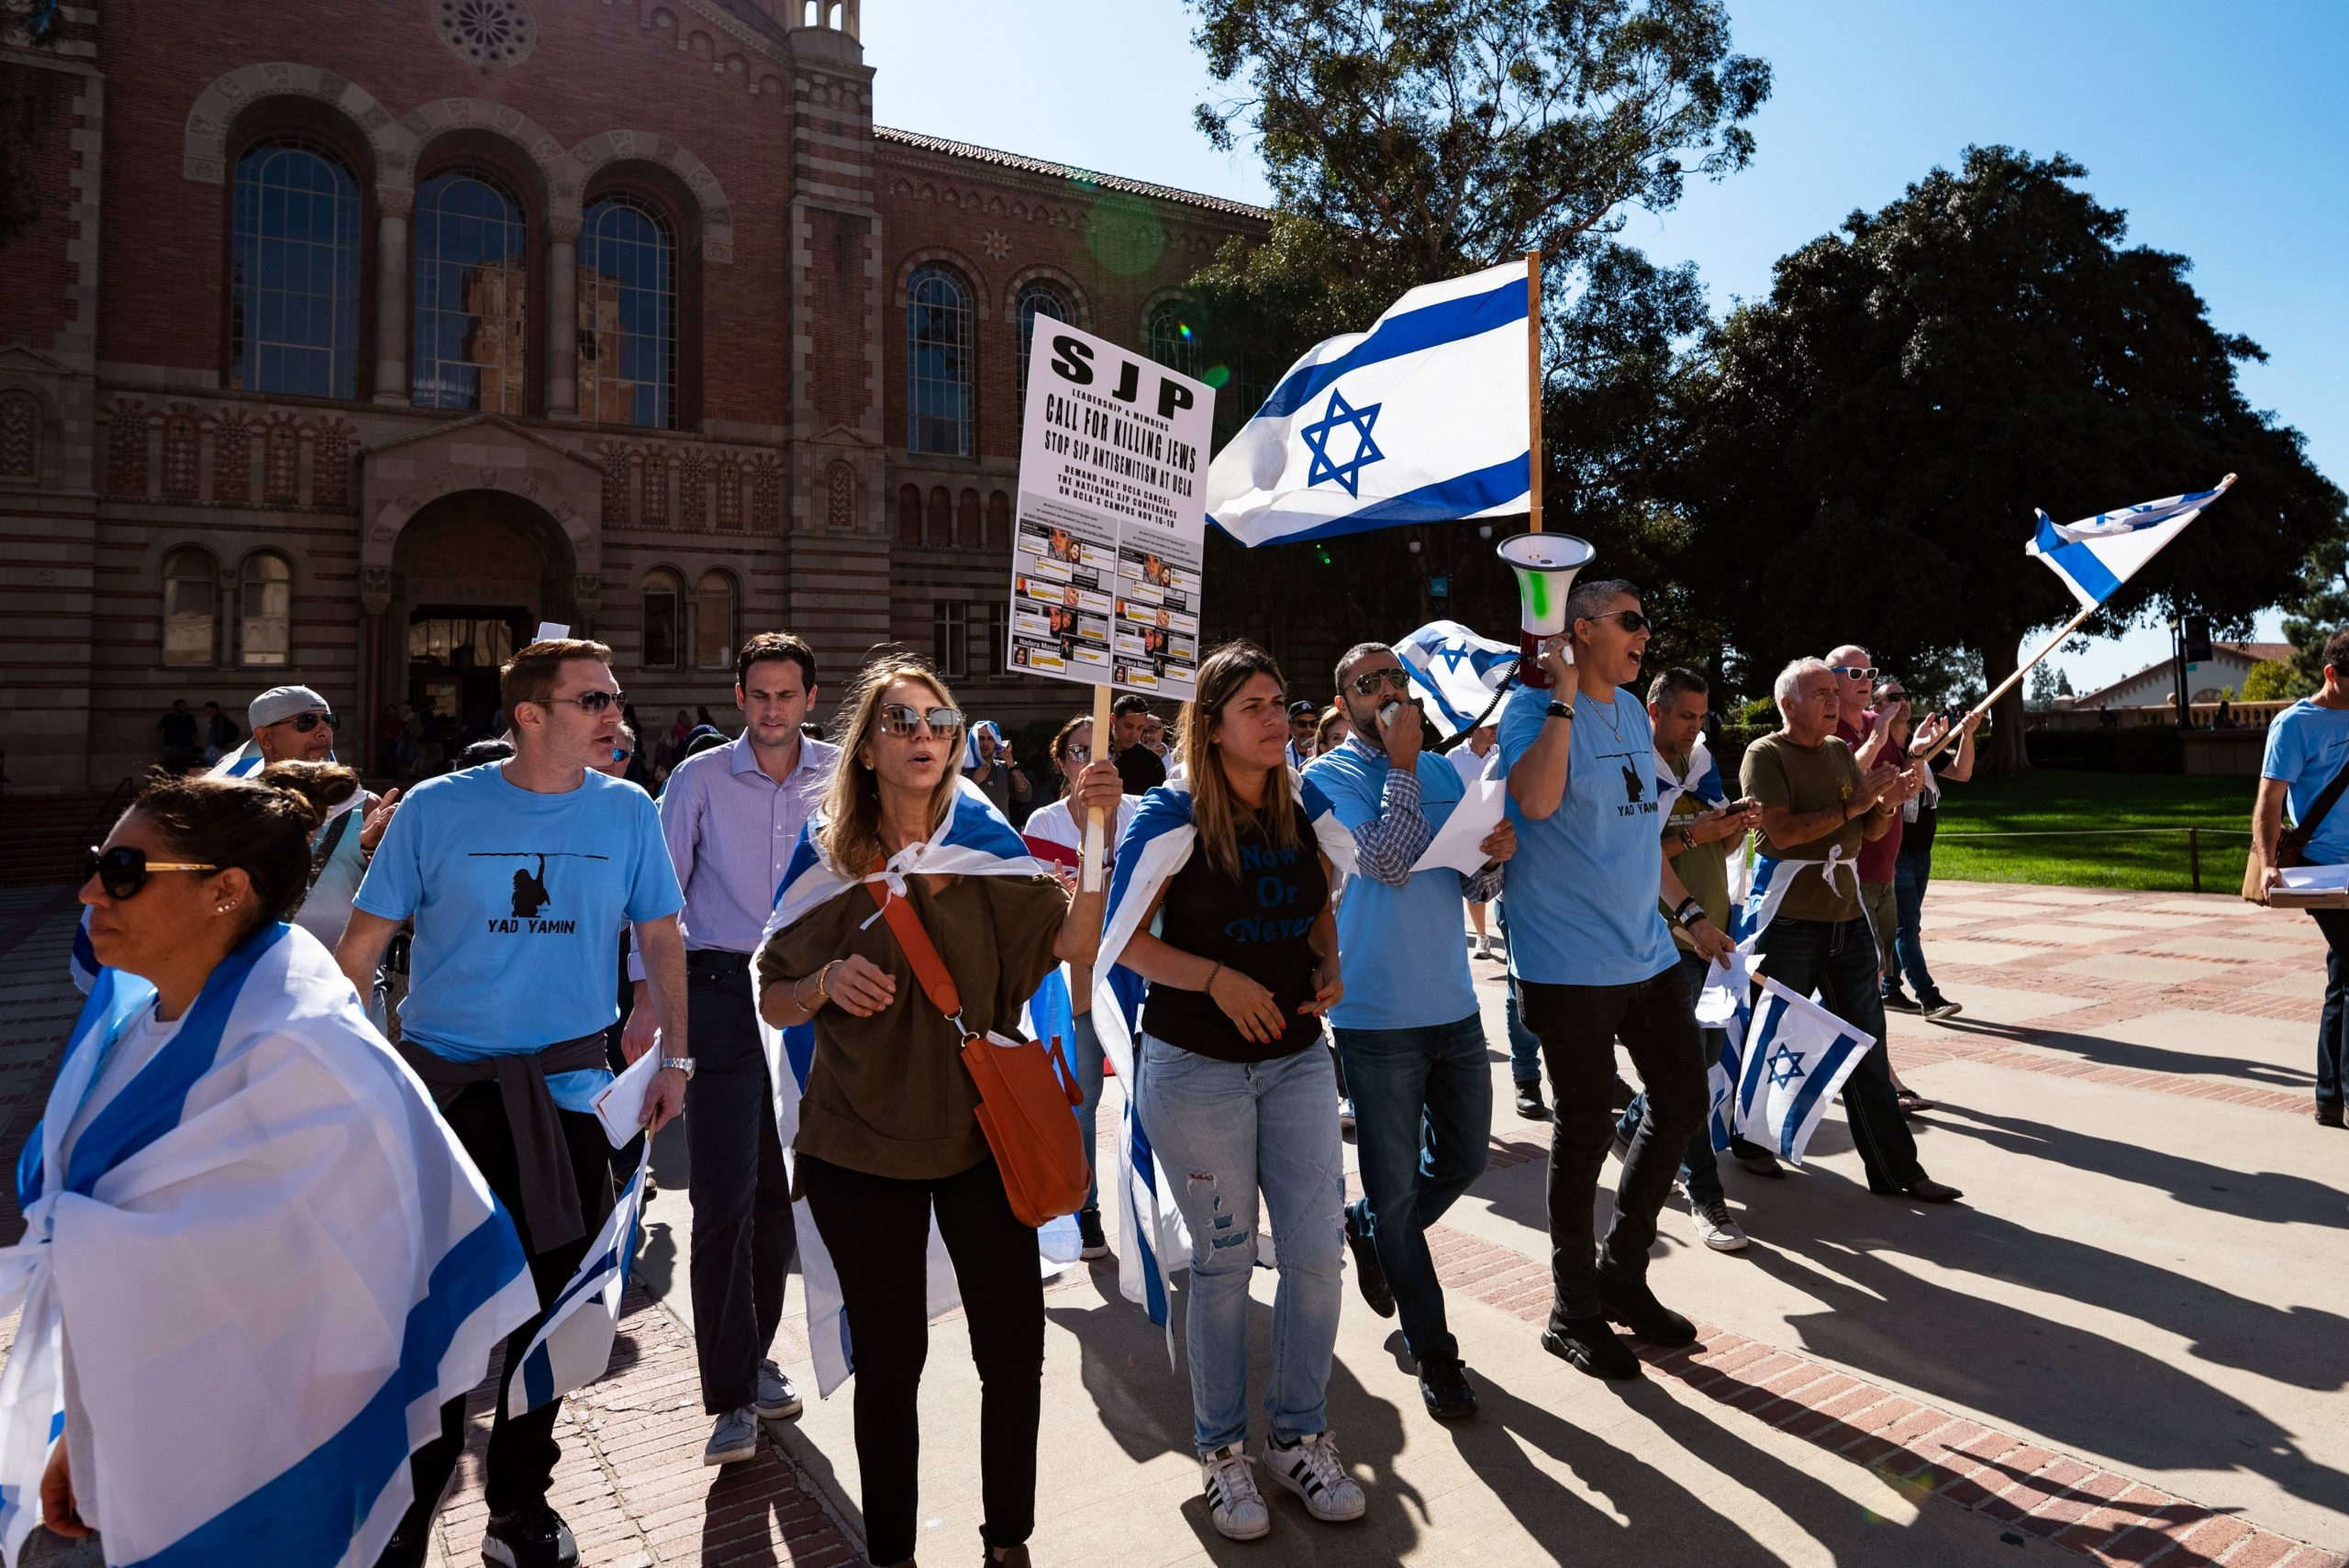 Members of the Jewish community and their allies protest anti-Semitism and the upcoming National Students for Justice in Palestine conference at the UCLA campus in Los Angeles, California on November 6, 2018. The Los Angeles City Council called on UCLA to cancel the NSJP conference over fears that it will promote anti-Semitism. (Photo by Ronen Tivony/NurPhoto via Getty Images)